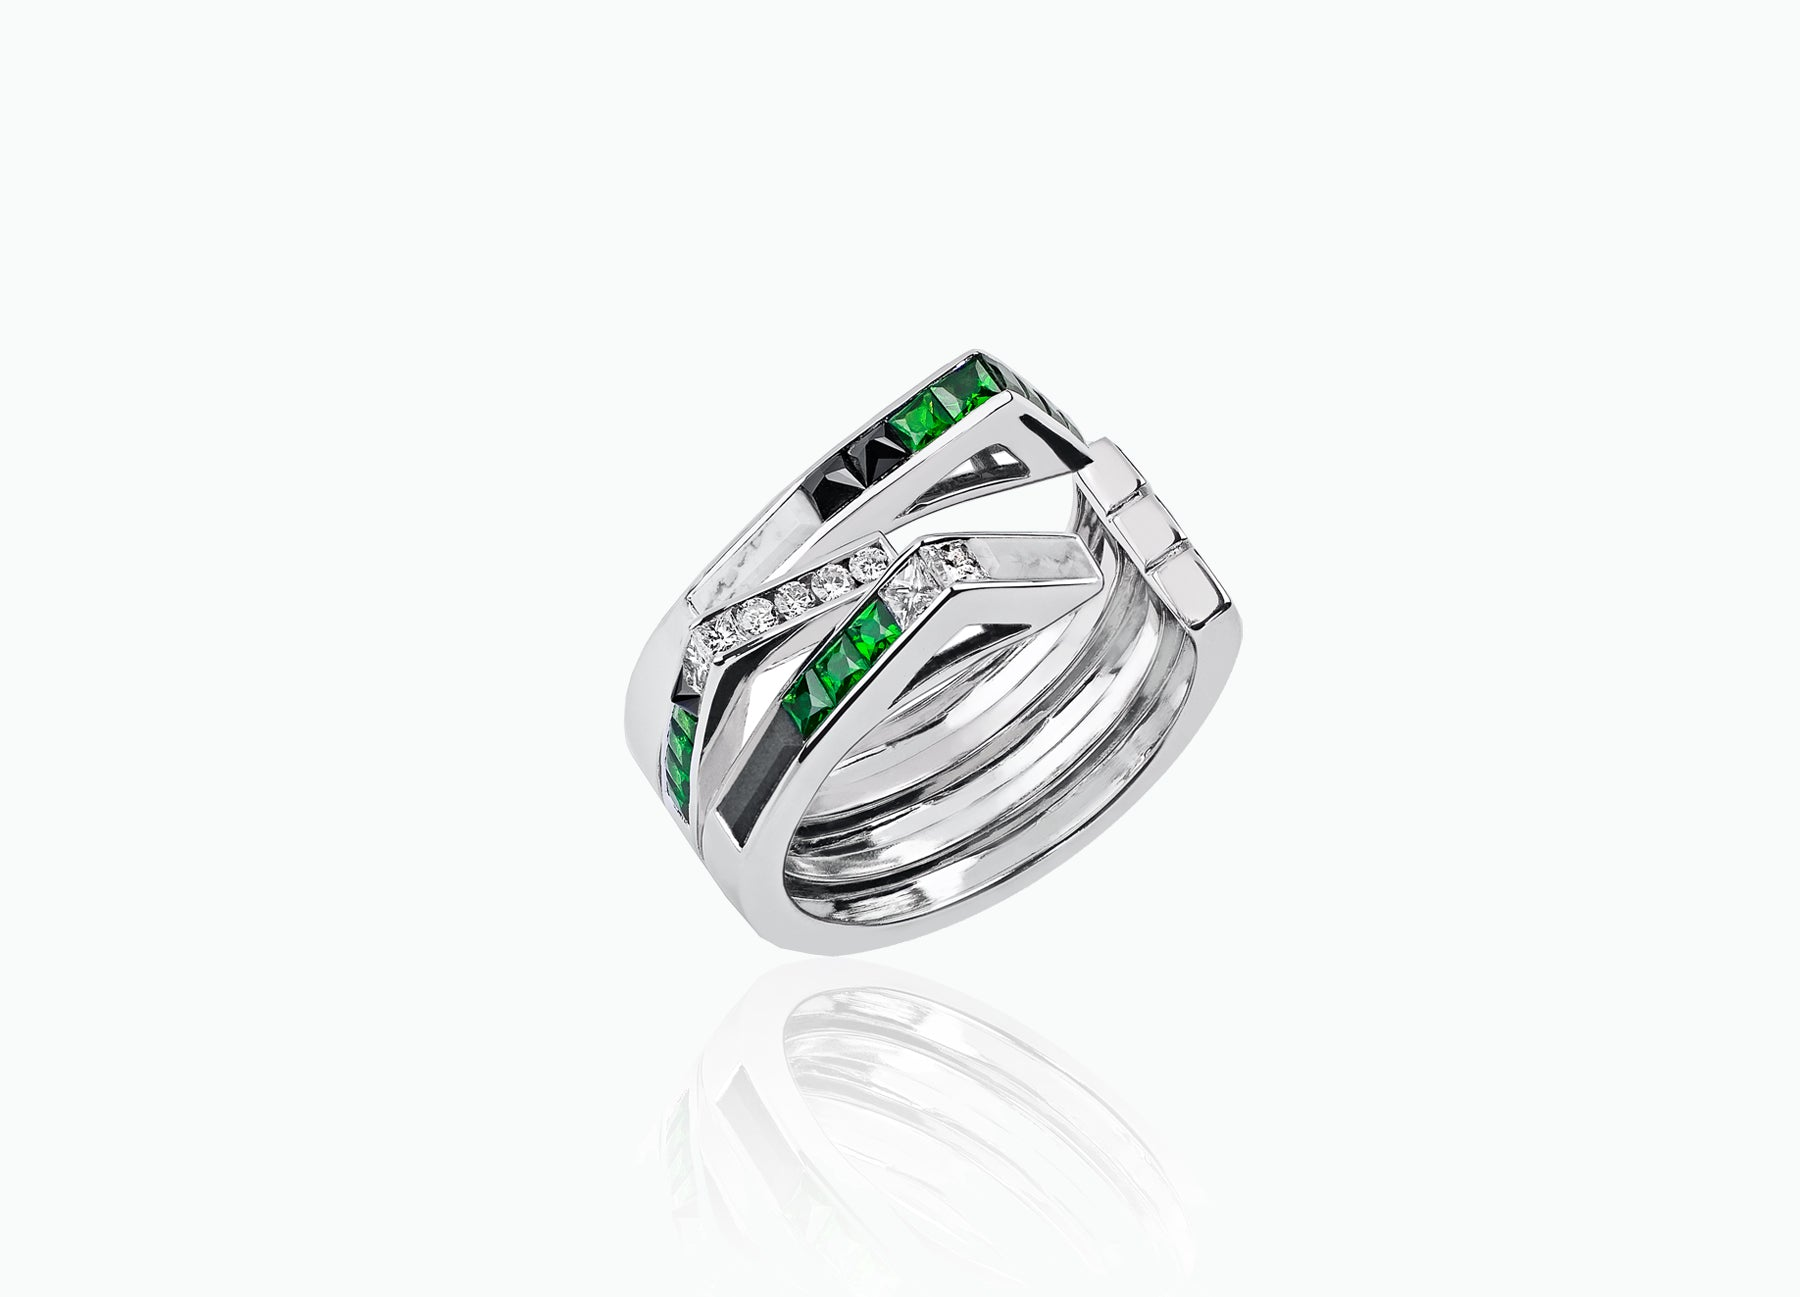 ART DECO STELLAR 3-ROW BAND RING